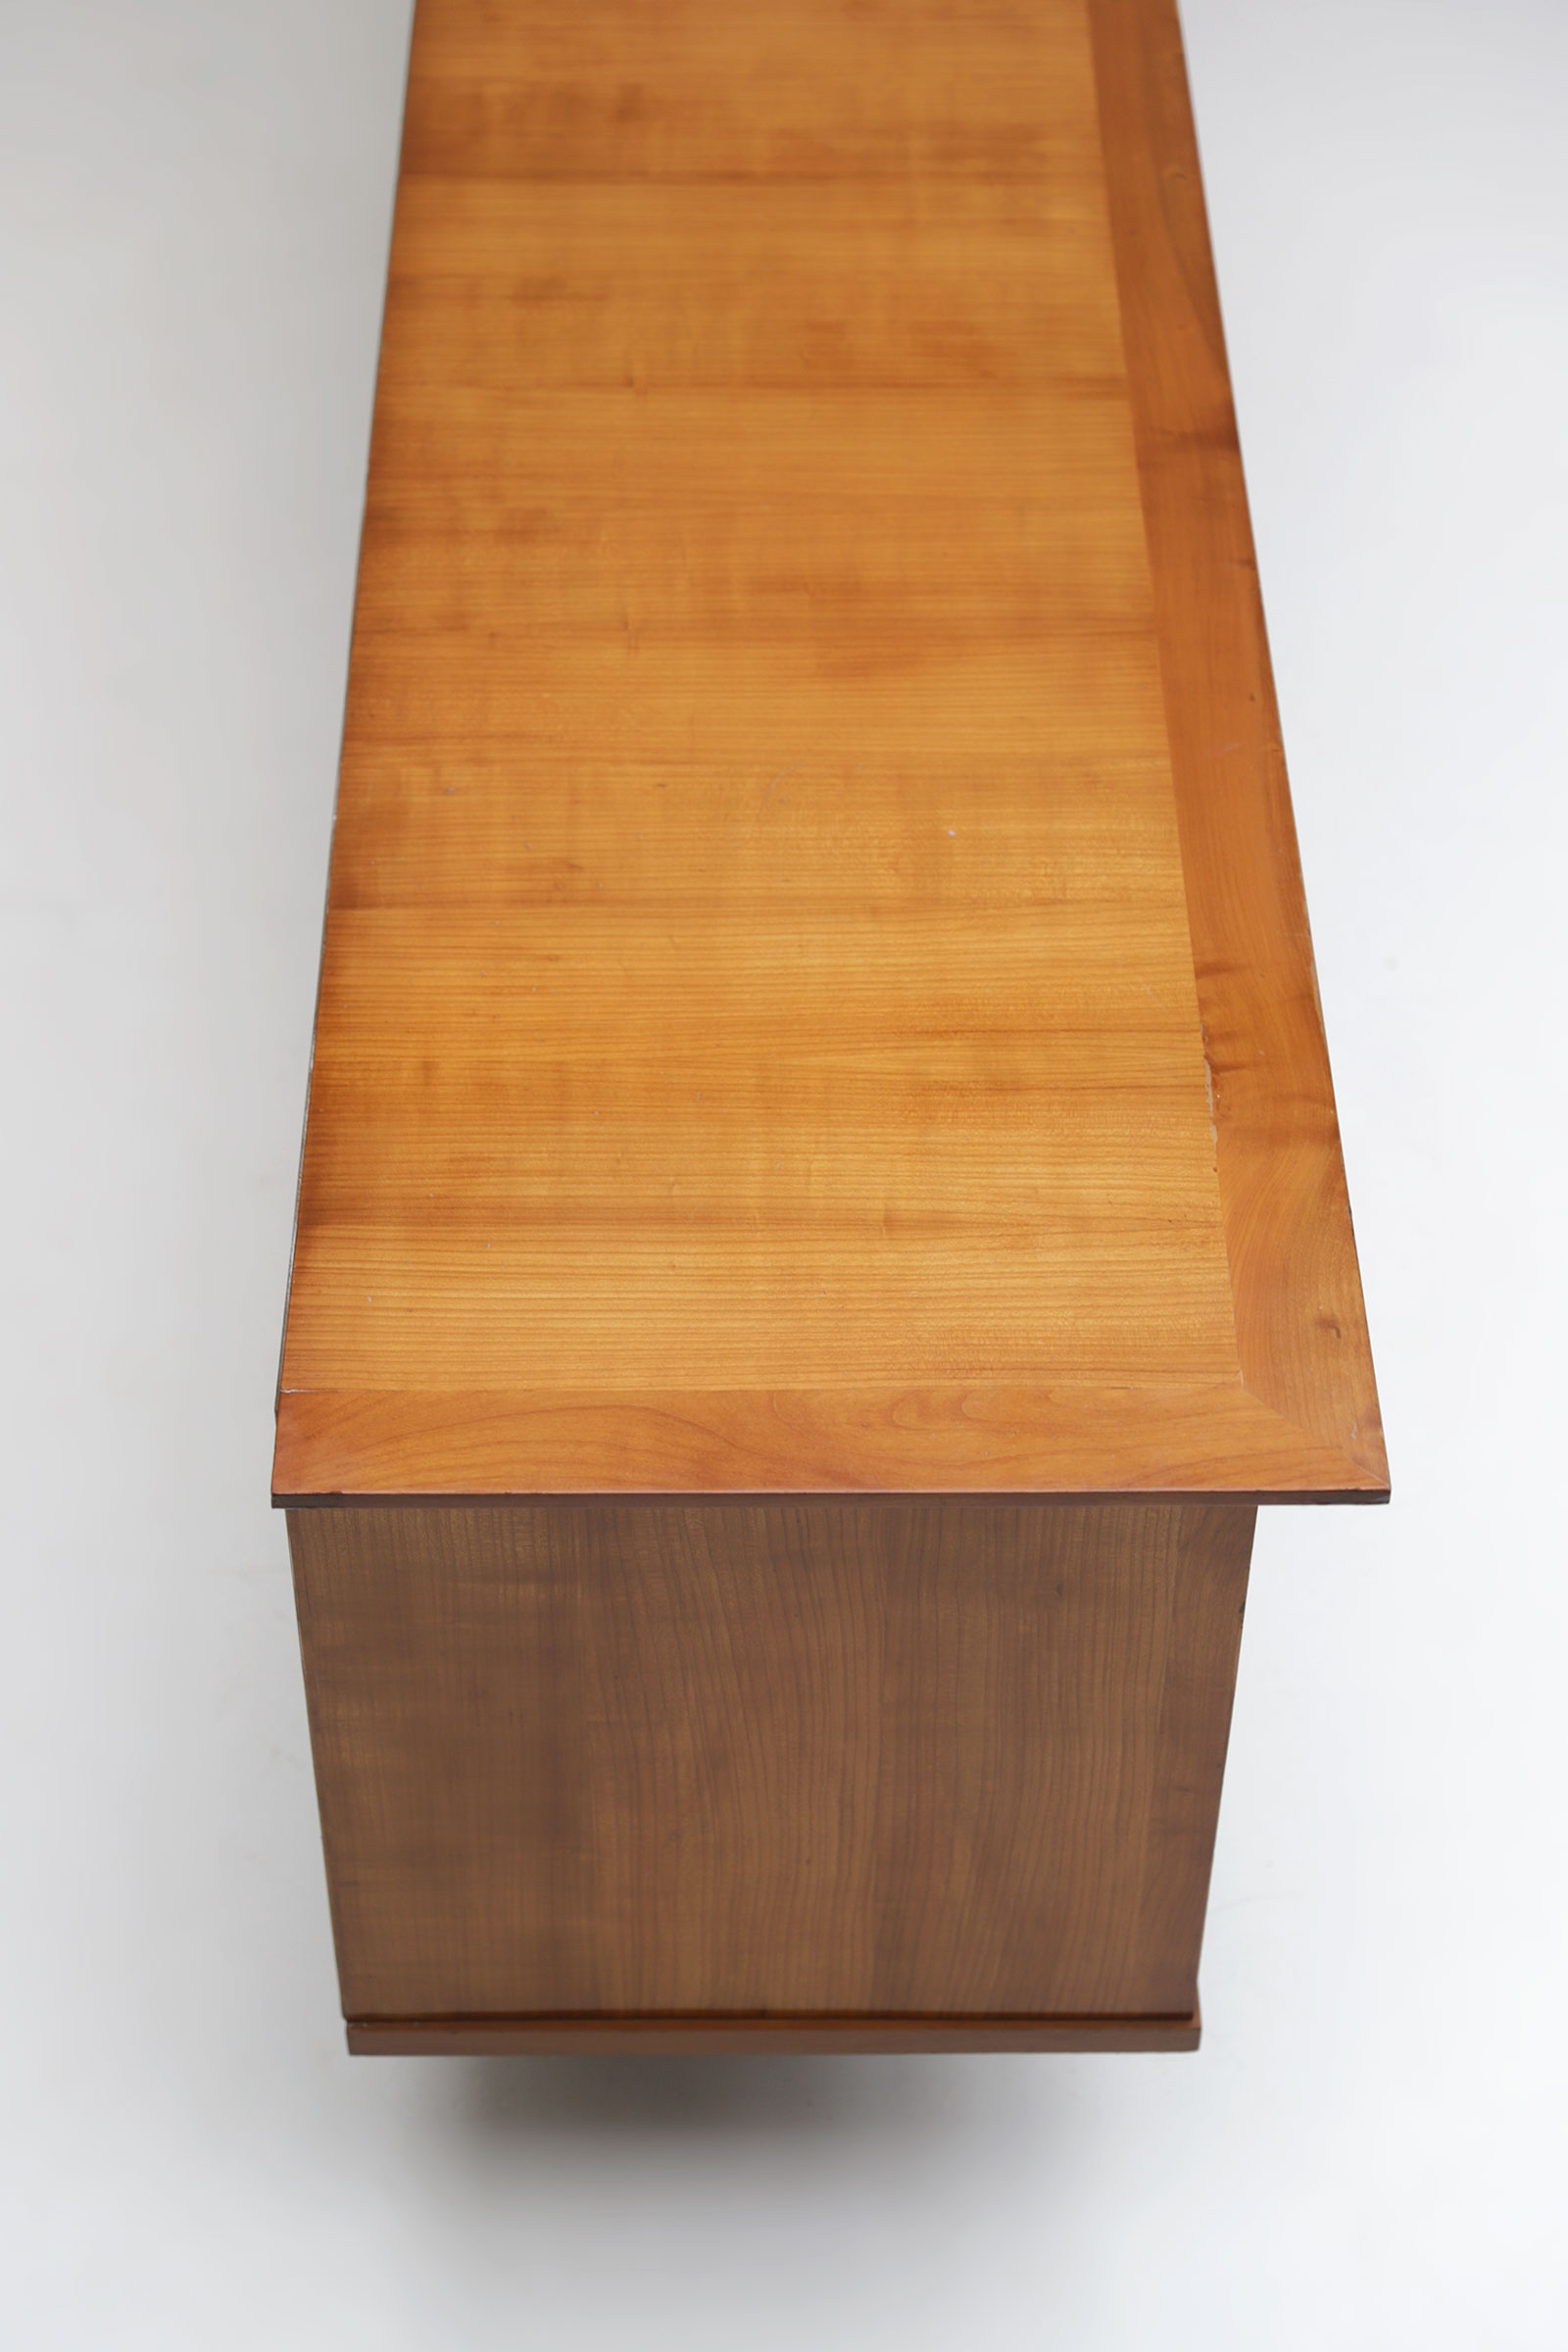 Exceptional Large 1950's Sideboard image 11